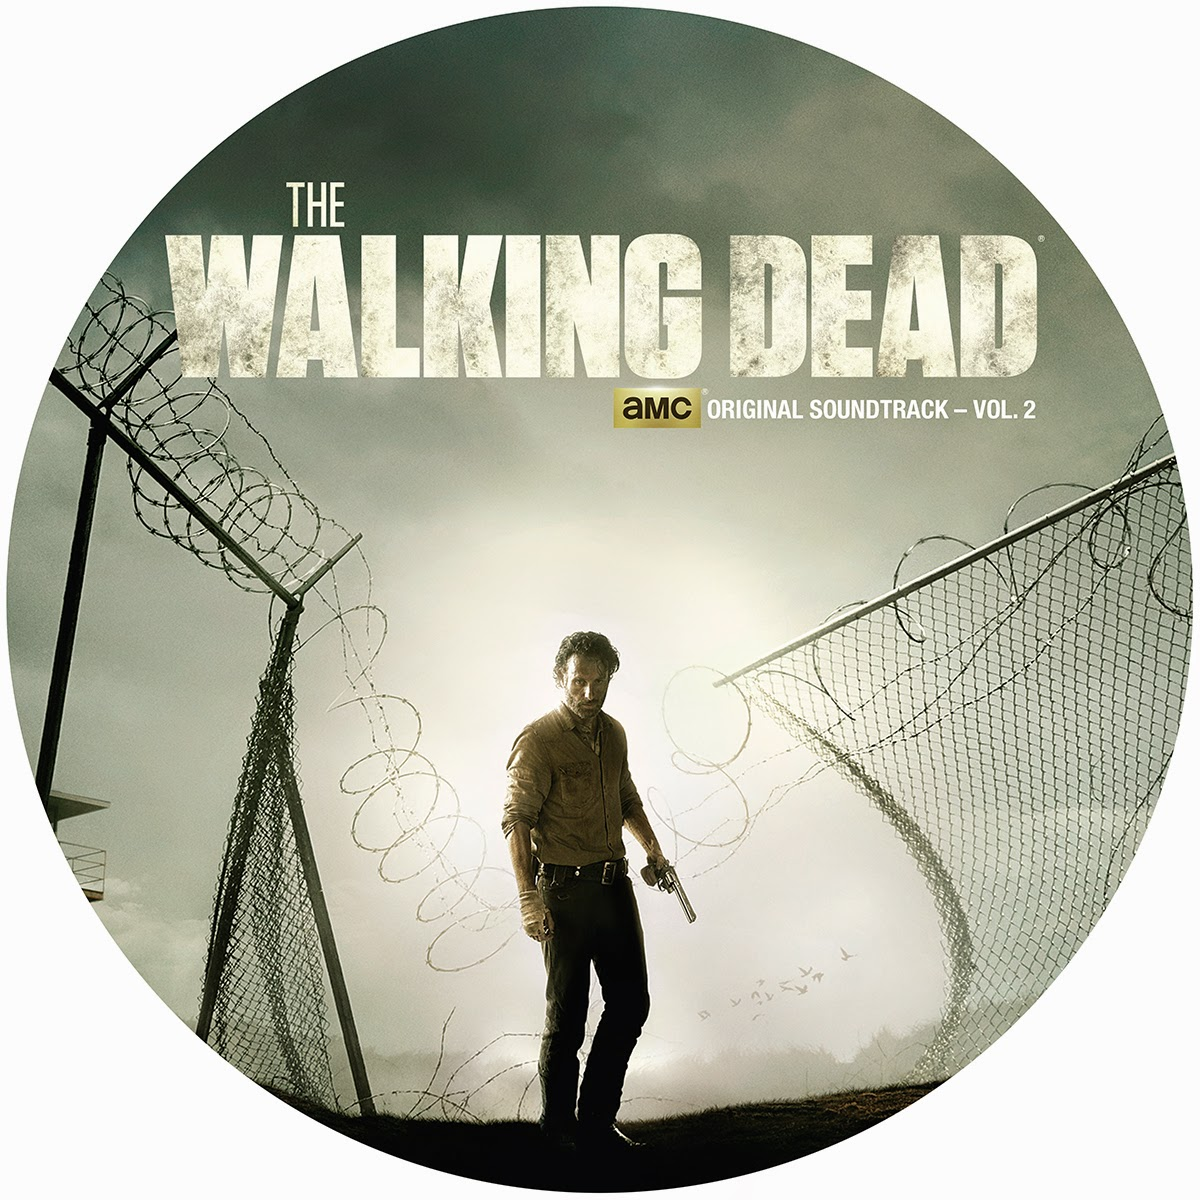 Record Store Day 2015 Exclusive The Walking Dead Original Soundtrack Volume 2 Picture Disc Vinyl Record by SPACELAB9